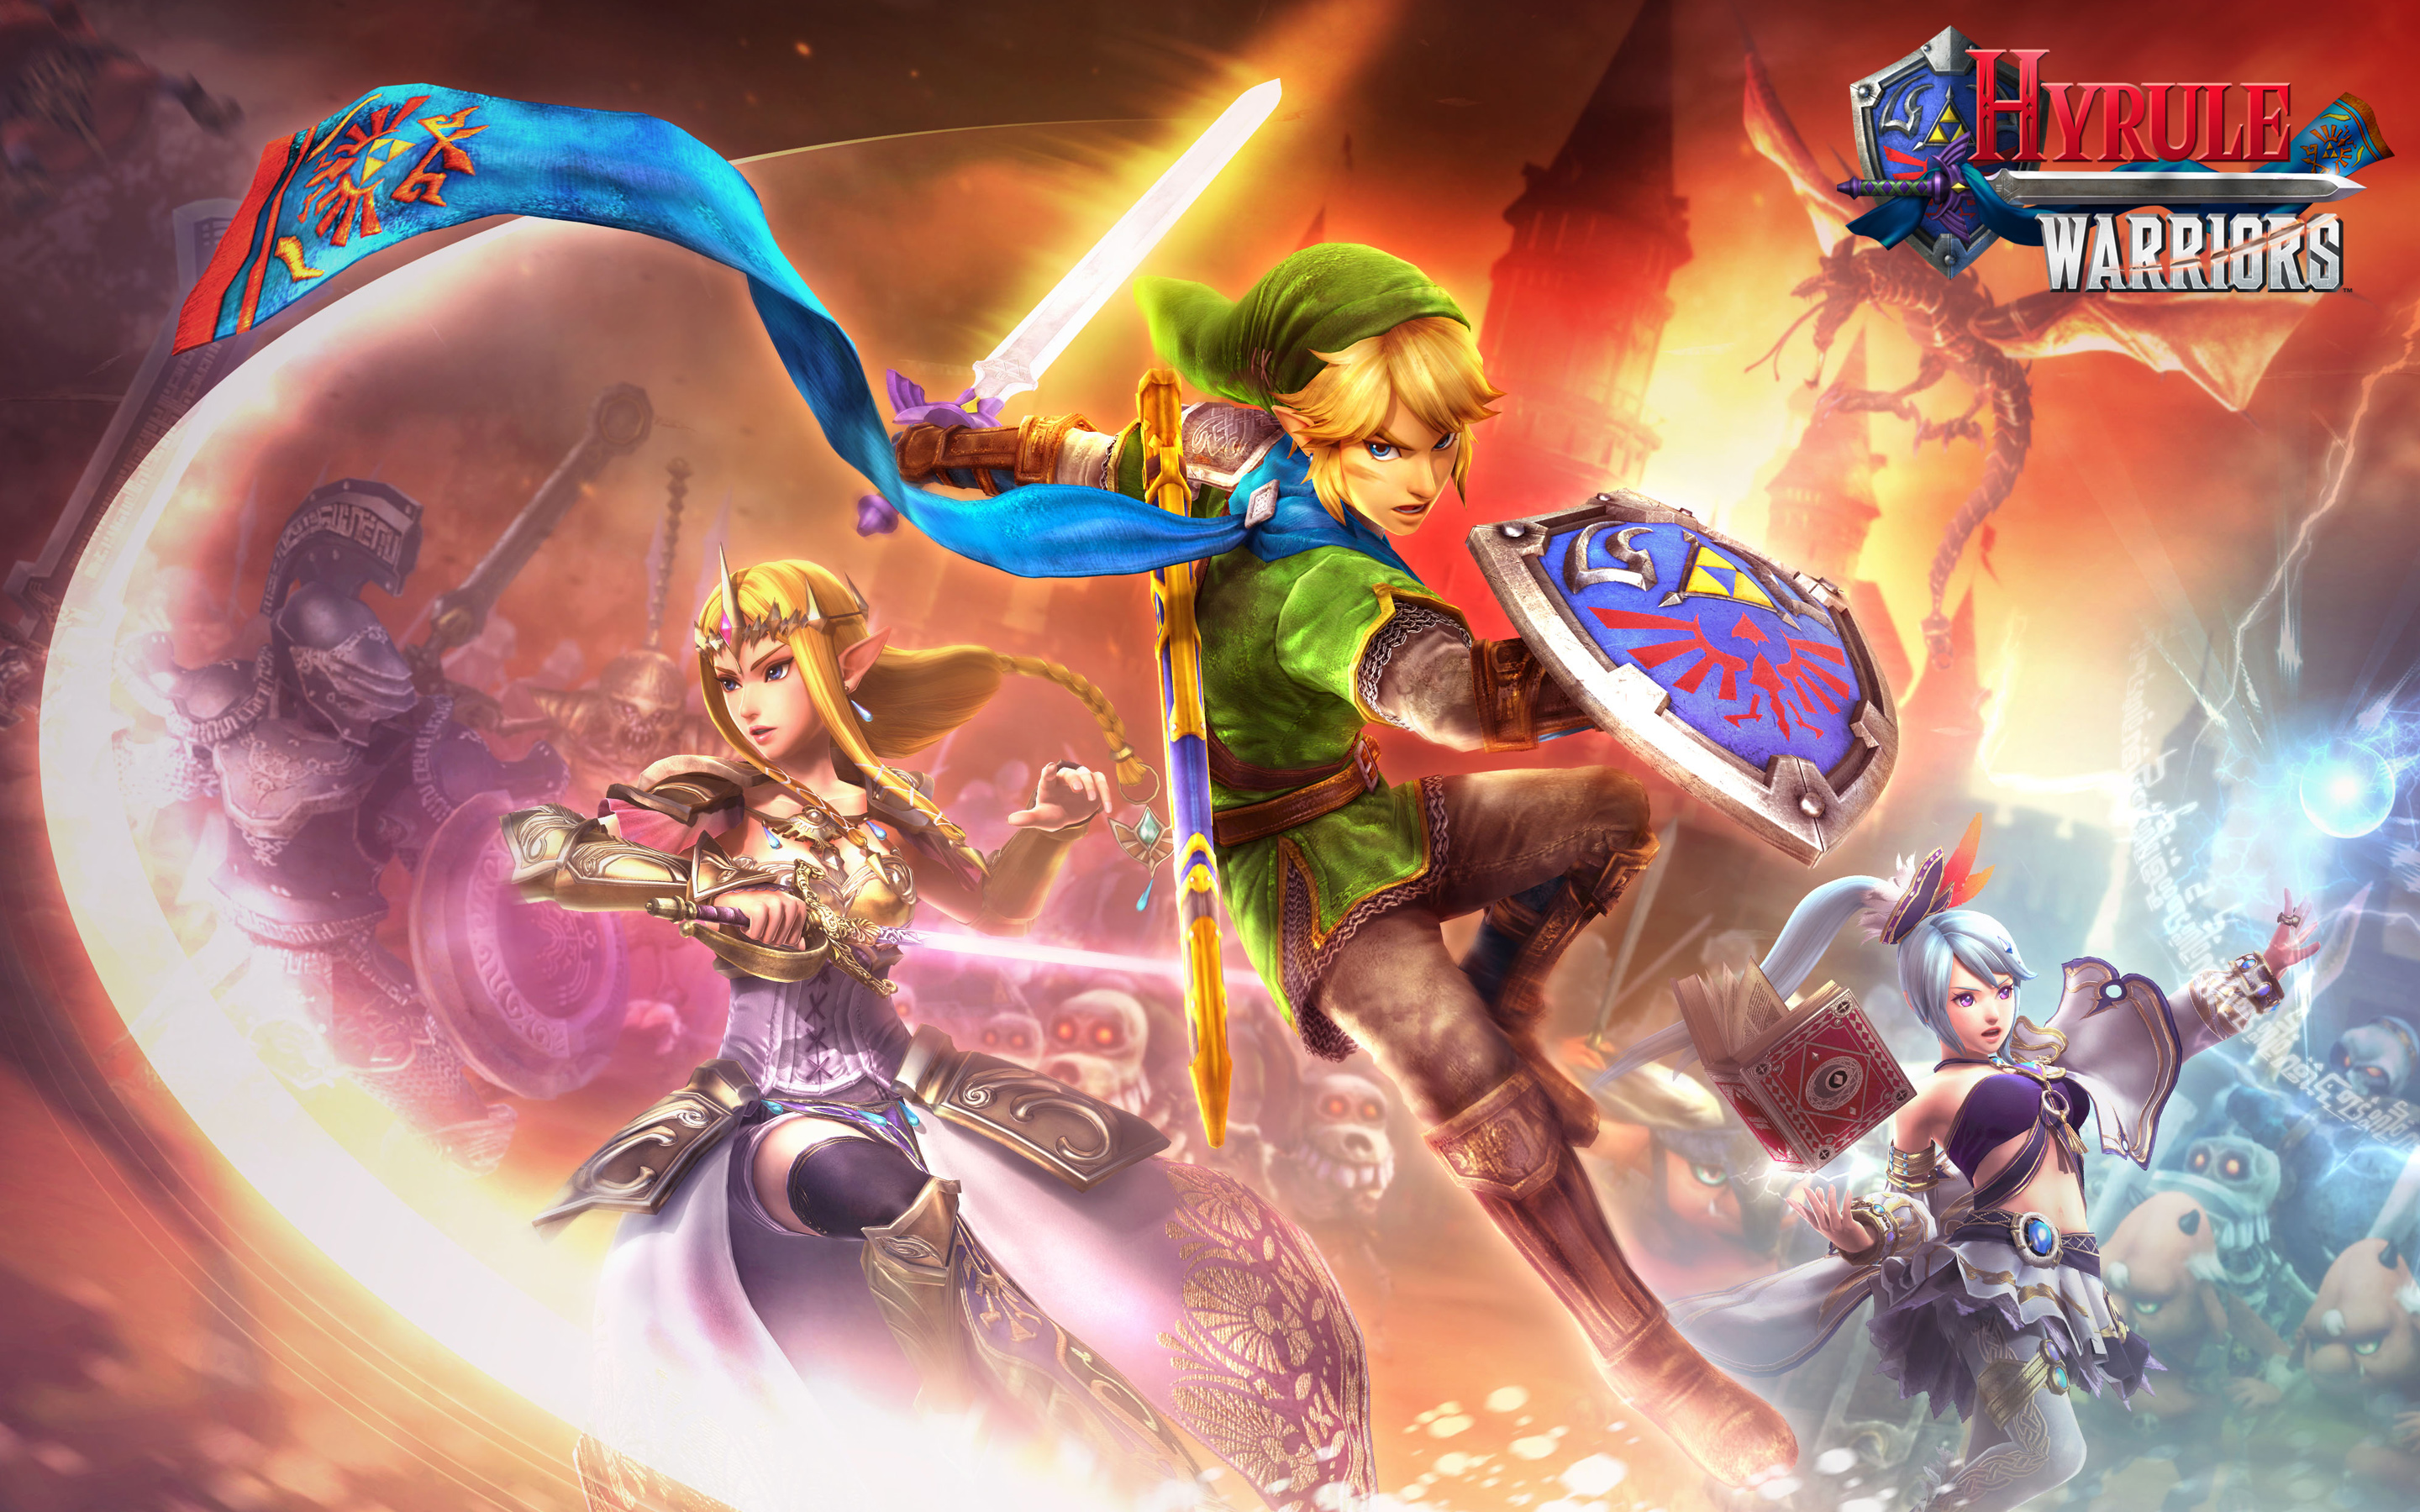 Hyrule Warriors Nintendo Wii U Game